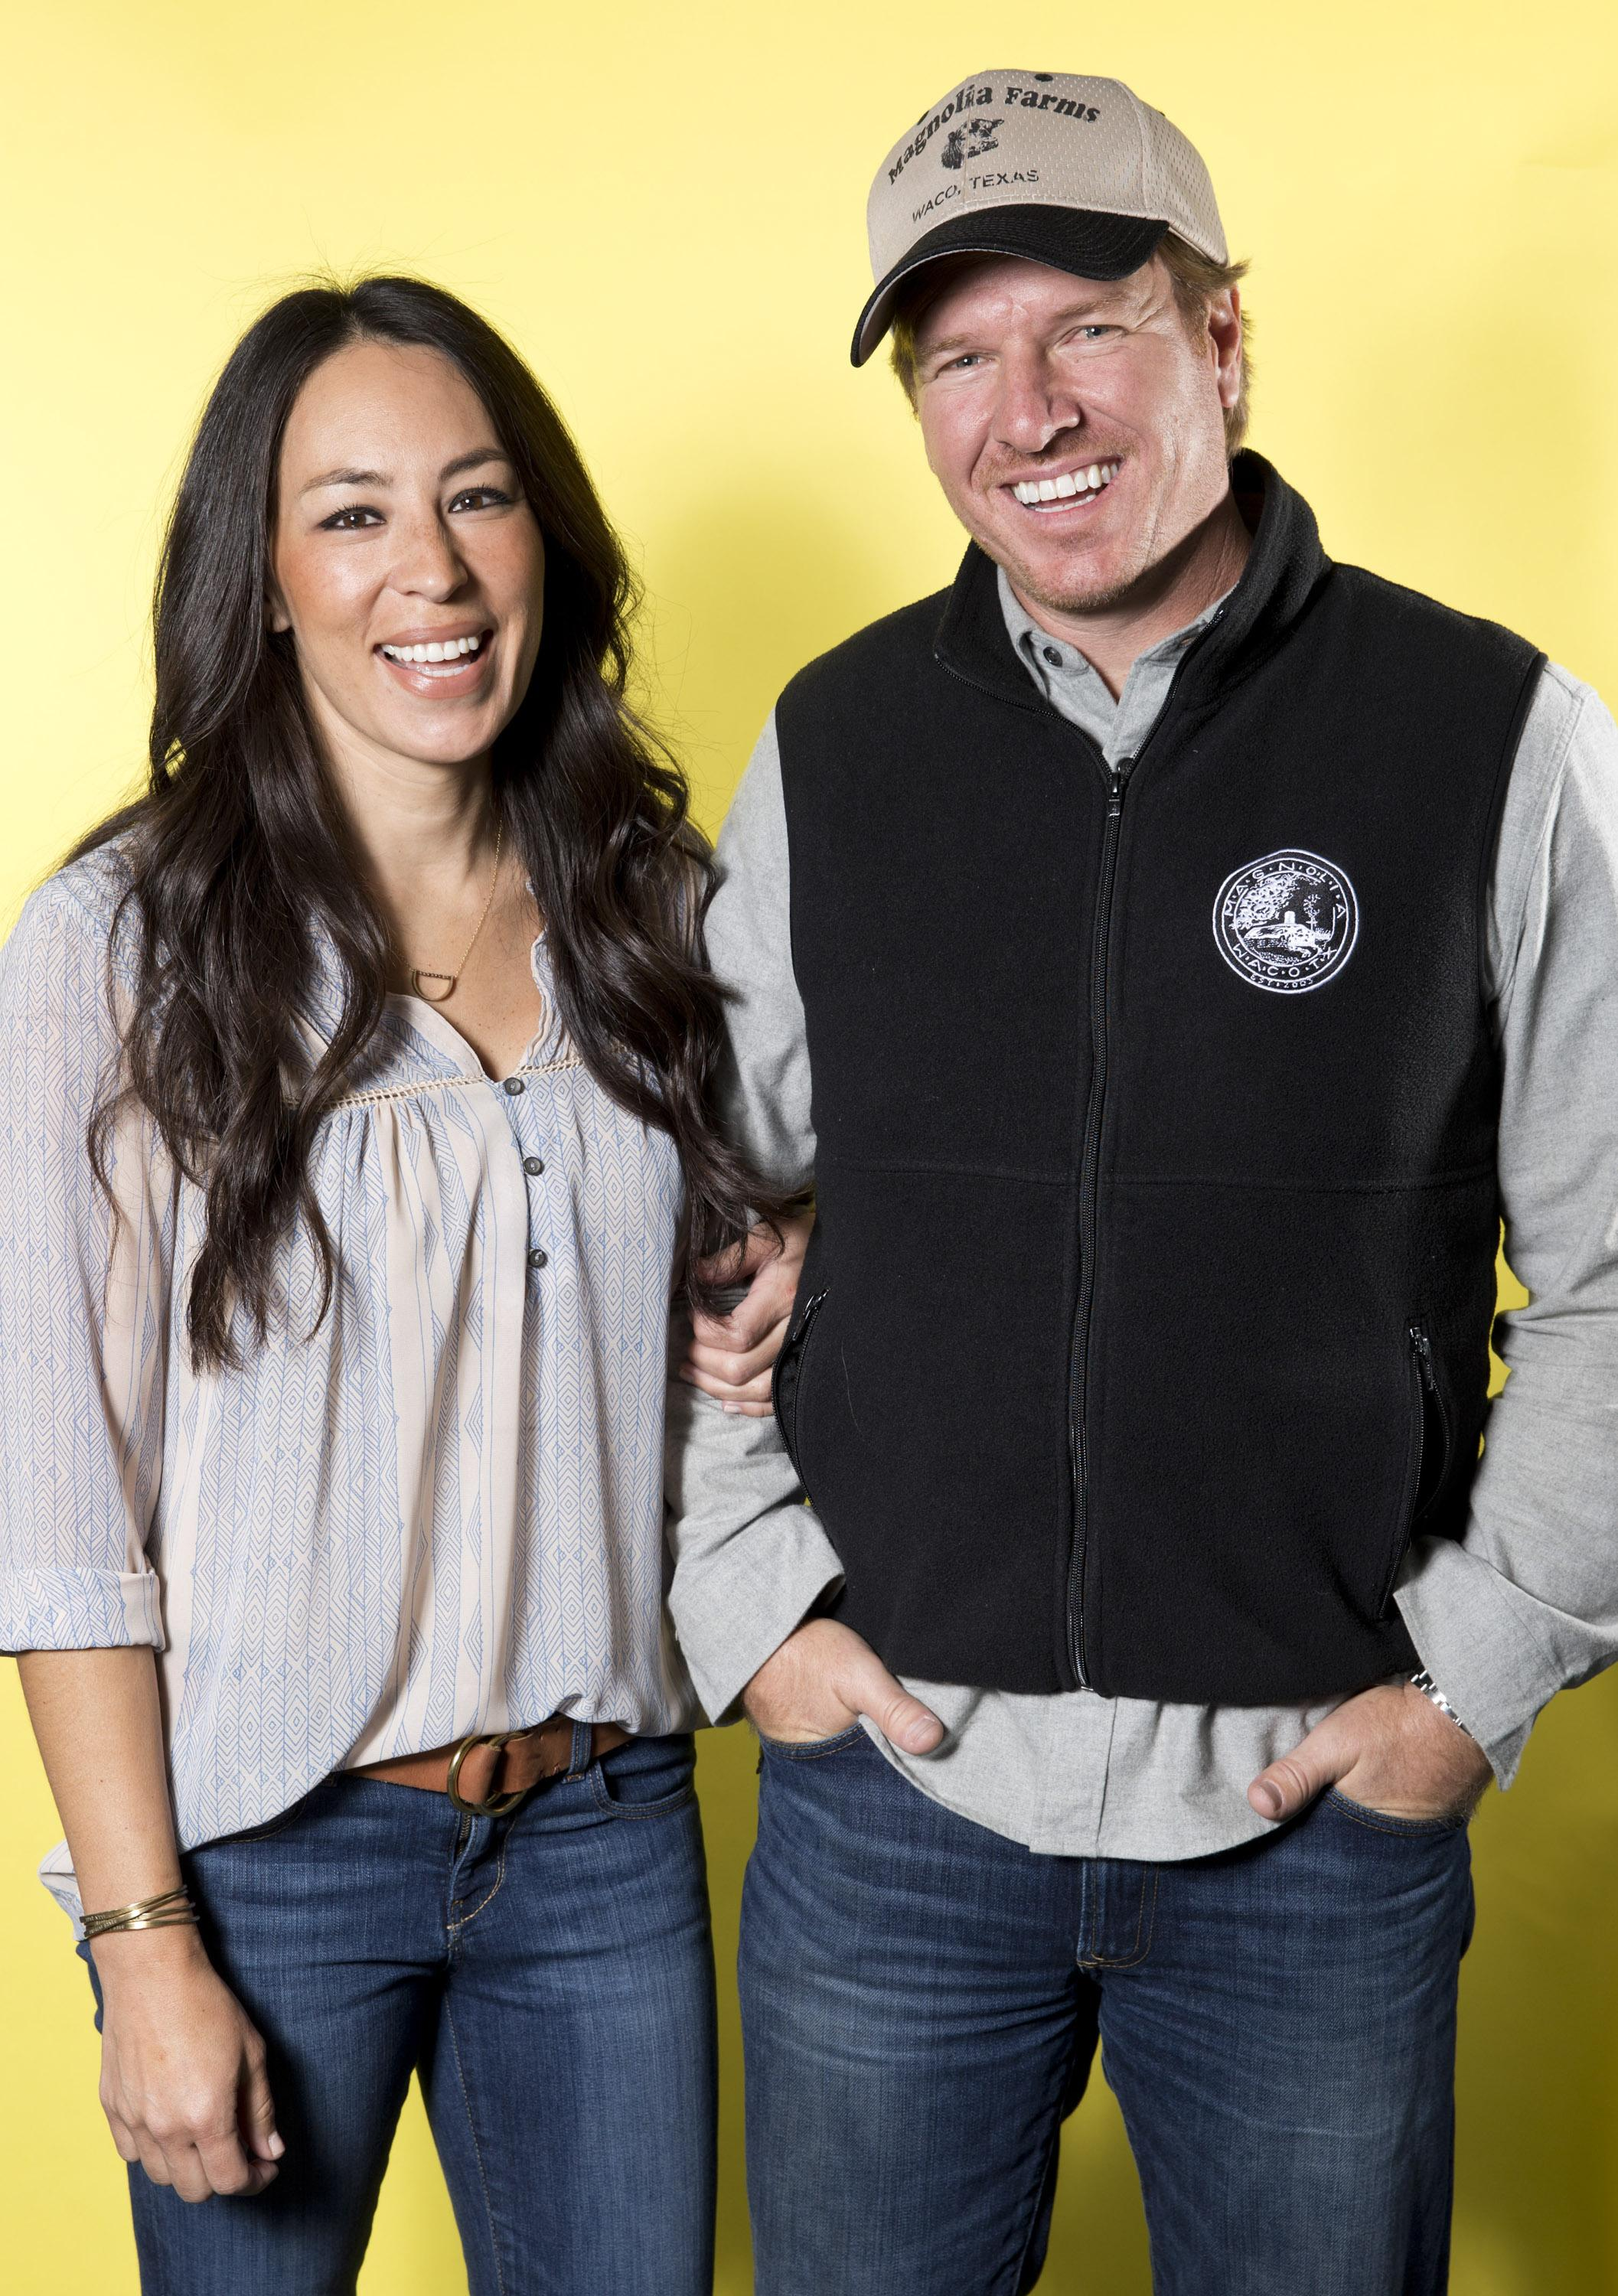 Chip And Joanna Gaines Fixer Upper Targeted By Left For Their Faith Washington Times